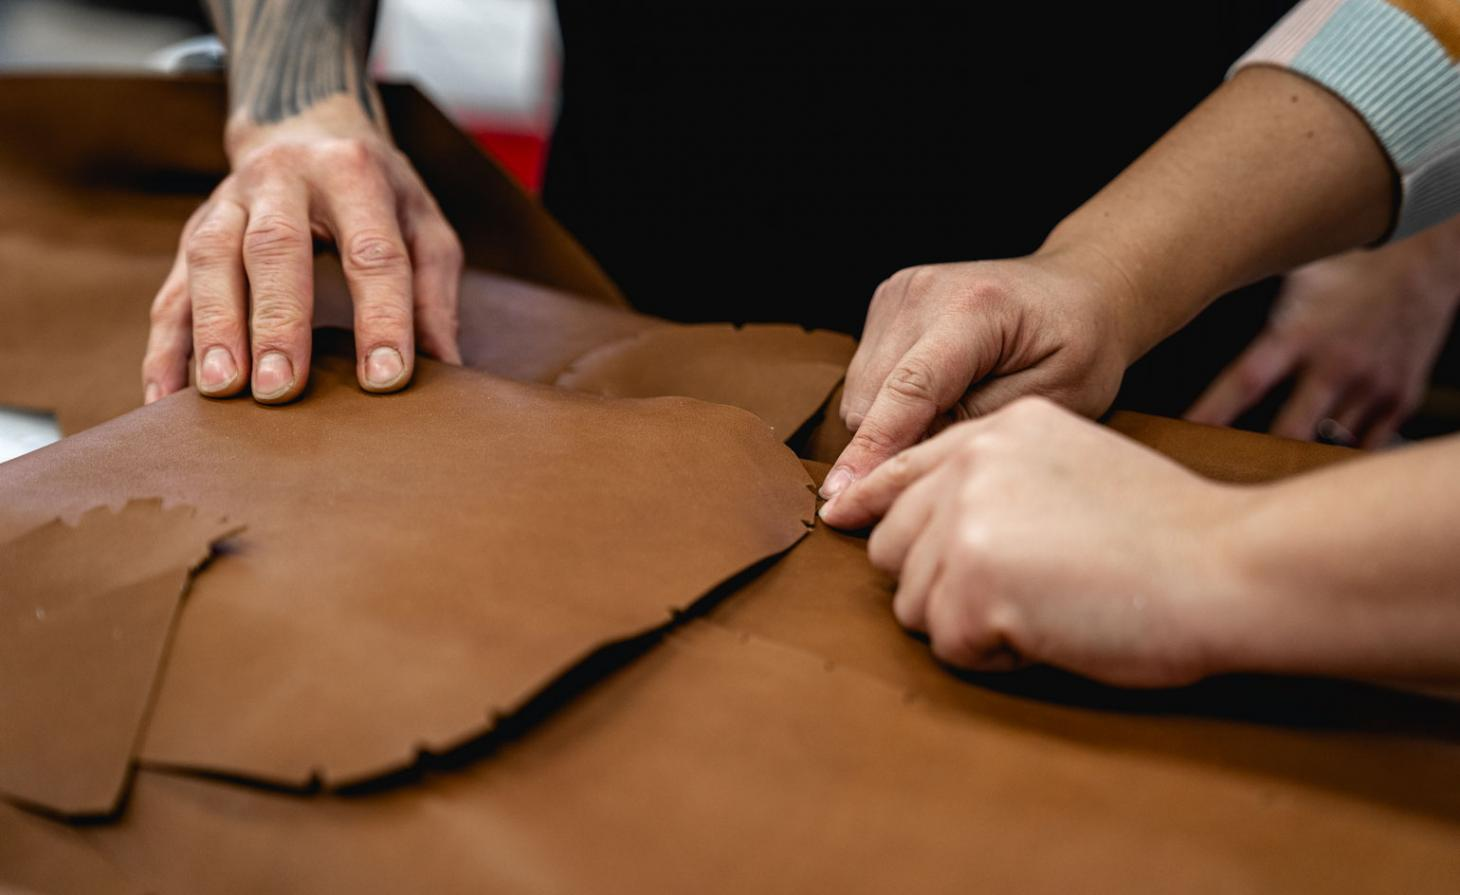 A man's hand cutting brown leather